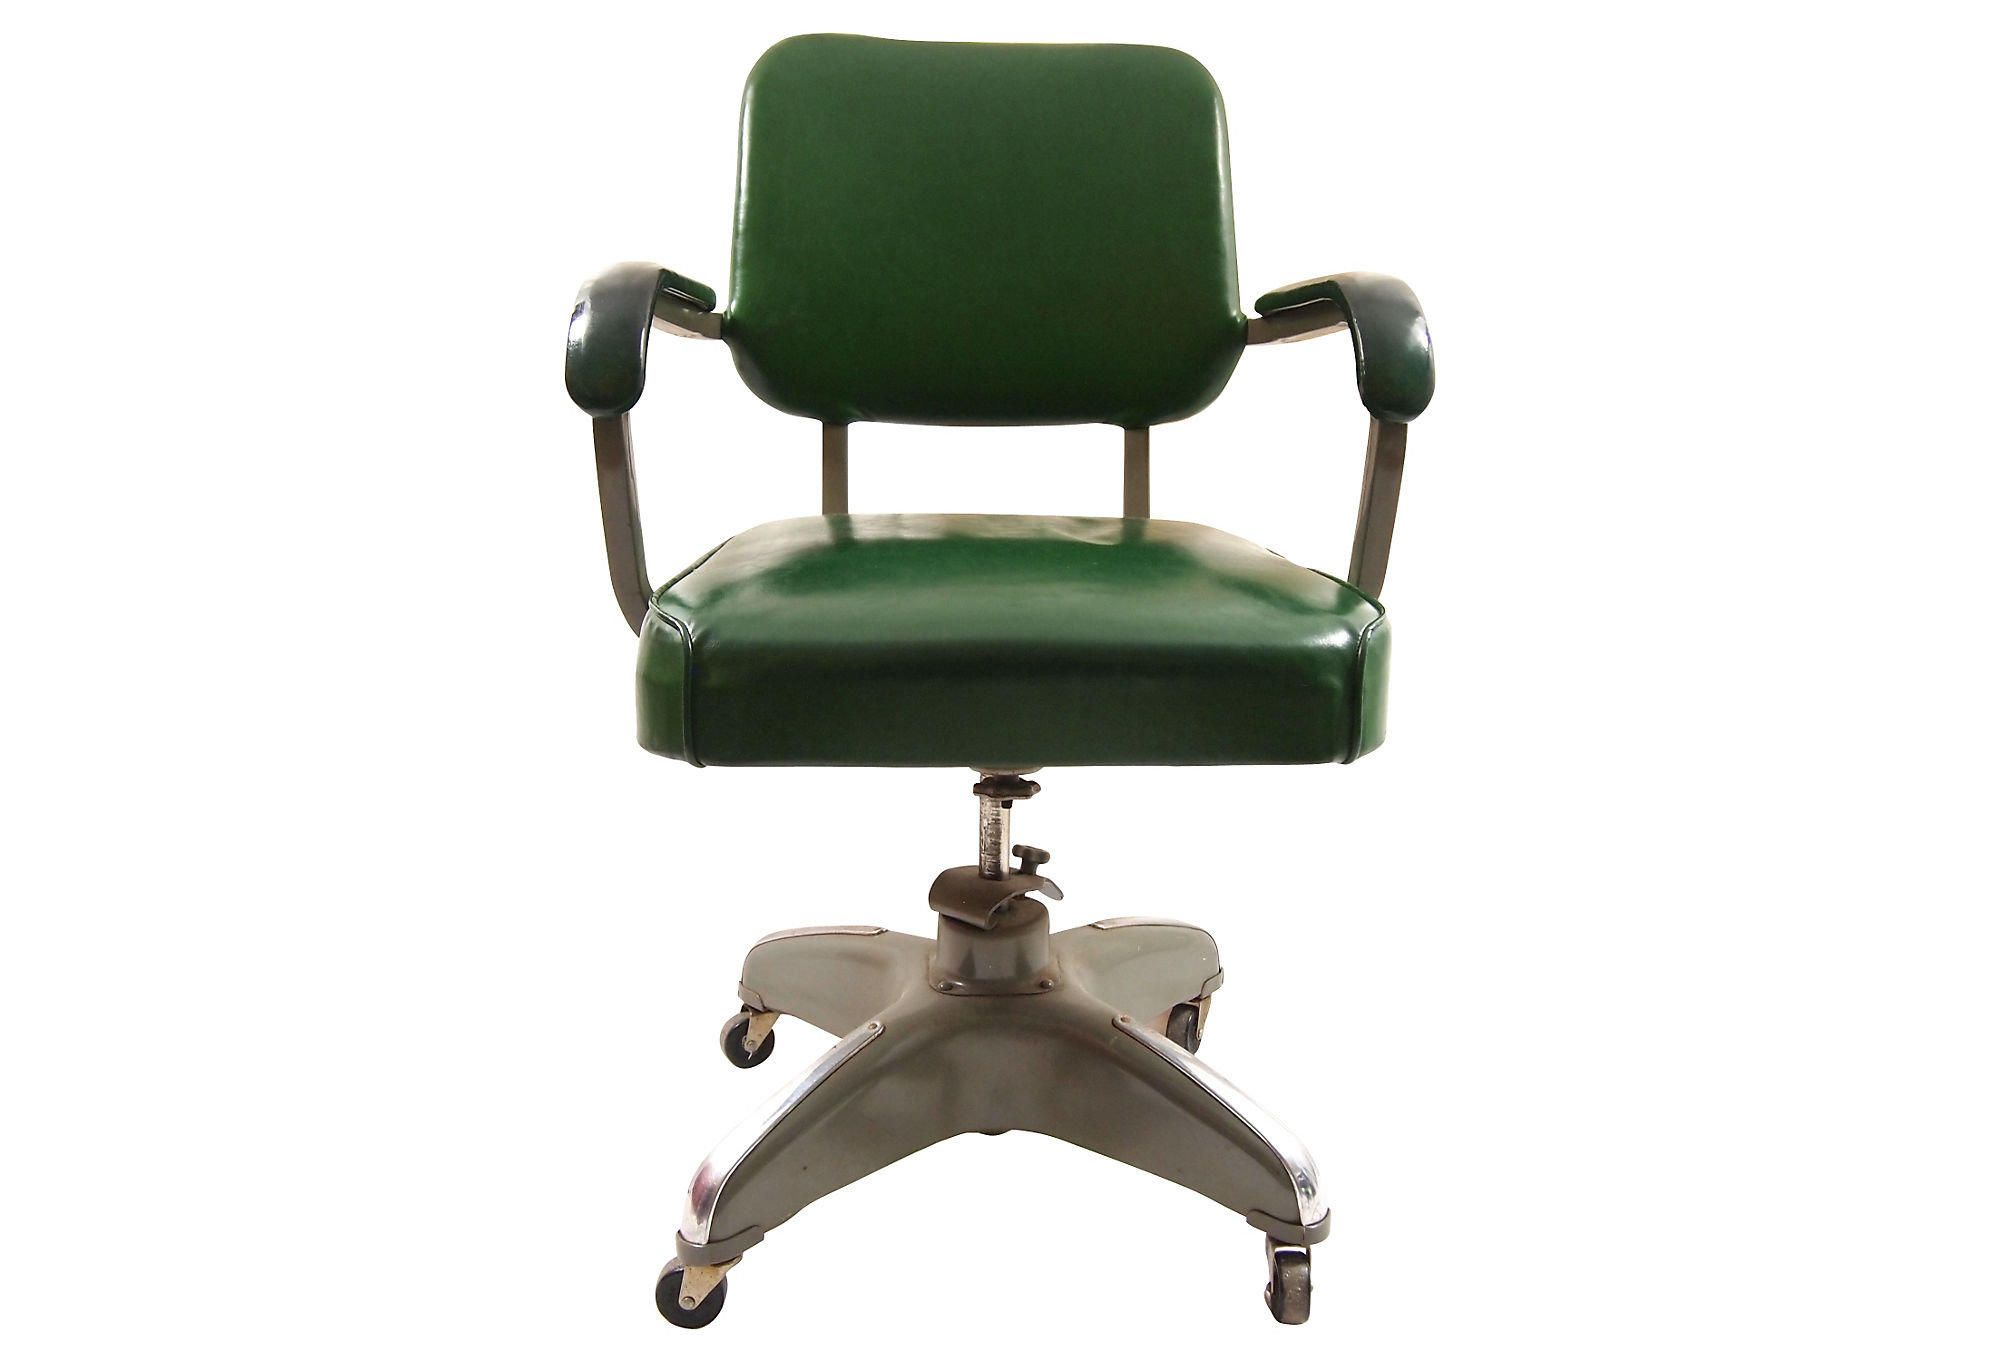 Images Of Mid Century Chairs Mid Century Modern Desk Chair Decofurnish Modern Desk Chair Mid Century Modern Desk Chair Mid Century Modern Office Chair